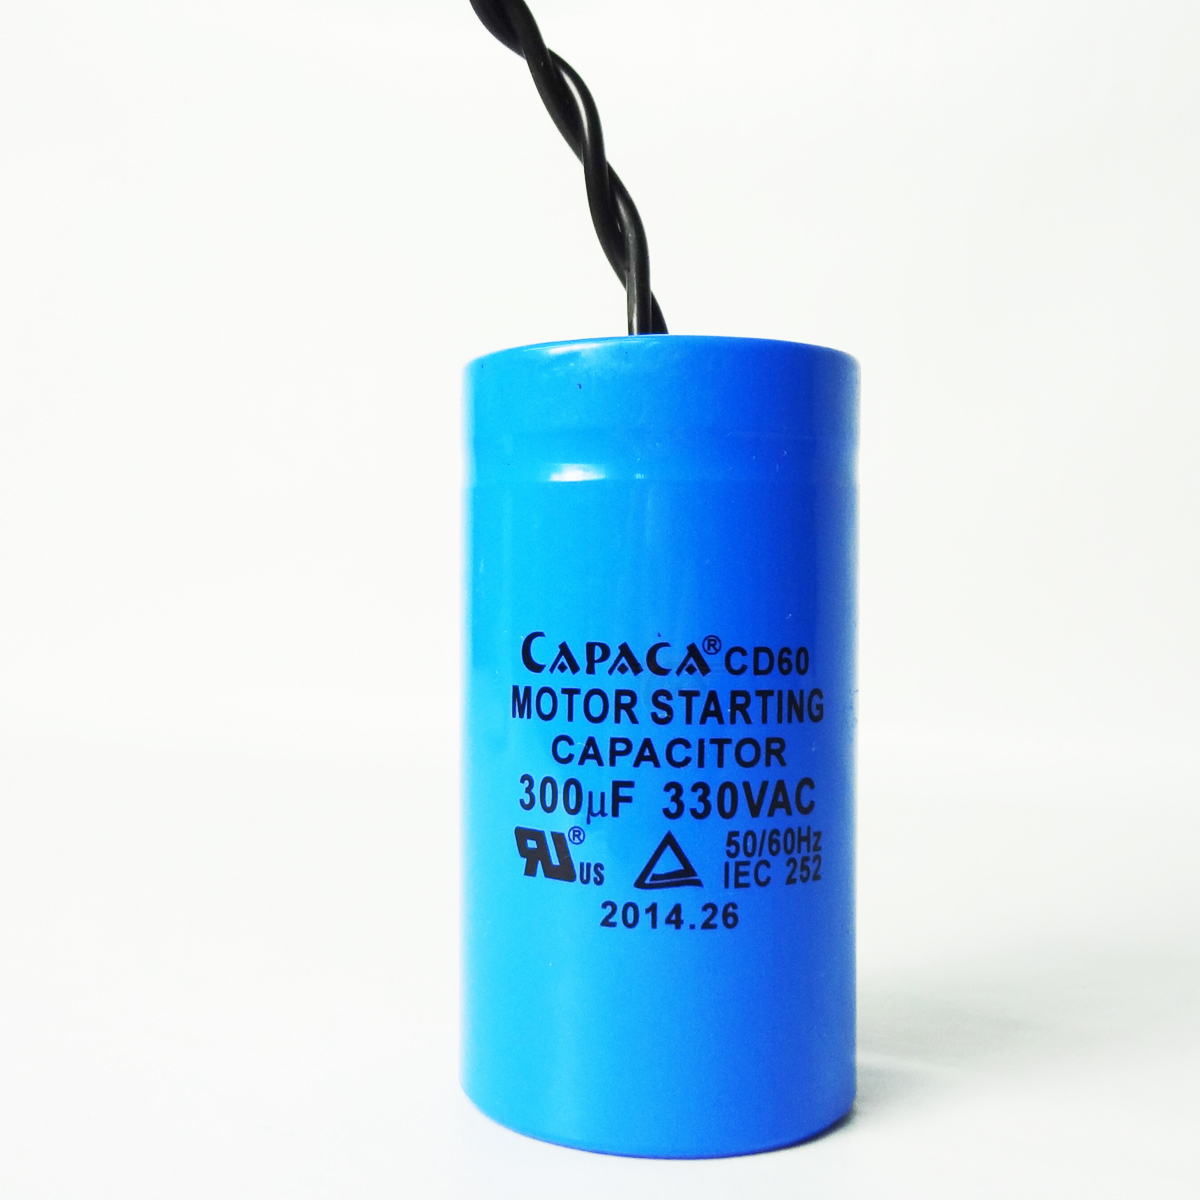 Duro auto lift start capacitor for 330vac motor power unit for Capaca motor running capacitor